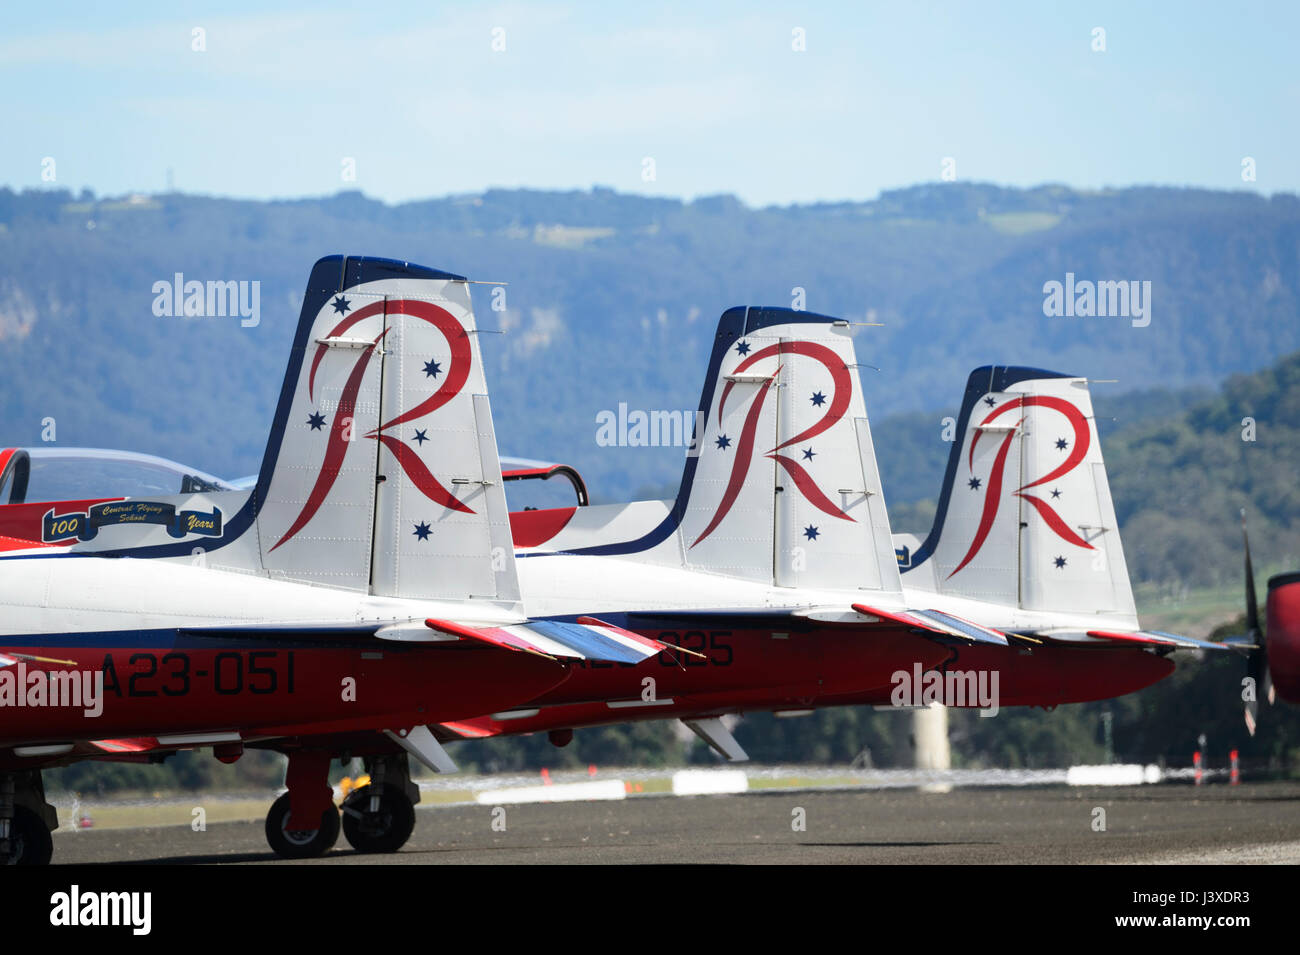 Tails of the Pilatus PC-9A A23-037 of the RAAF Roulettes Formation Aerobatic Team Aircraft at Wings over Illawarra - Stock Image